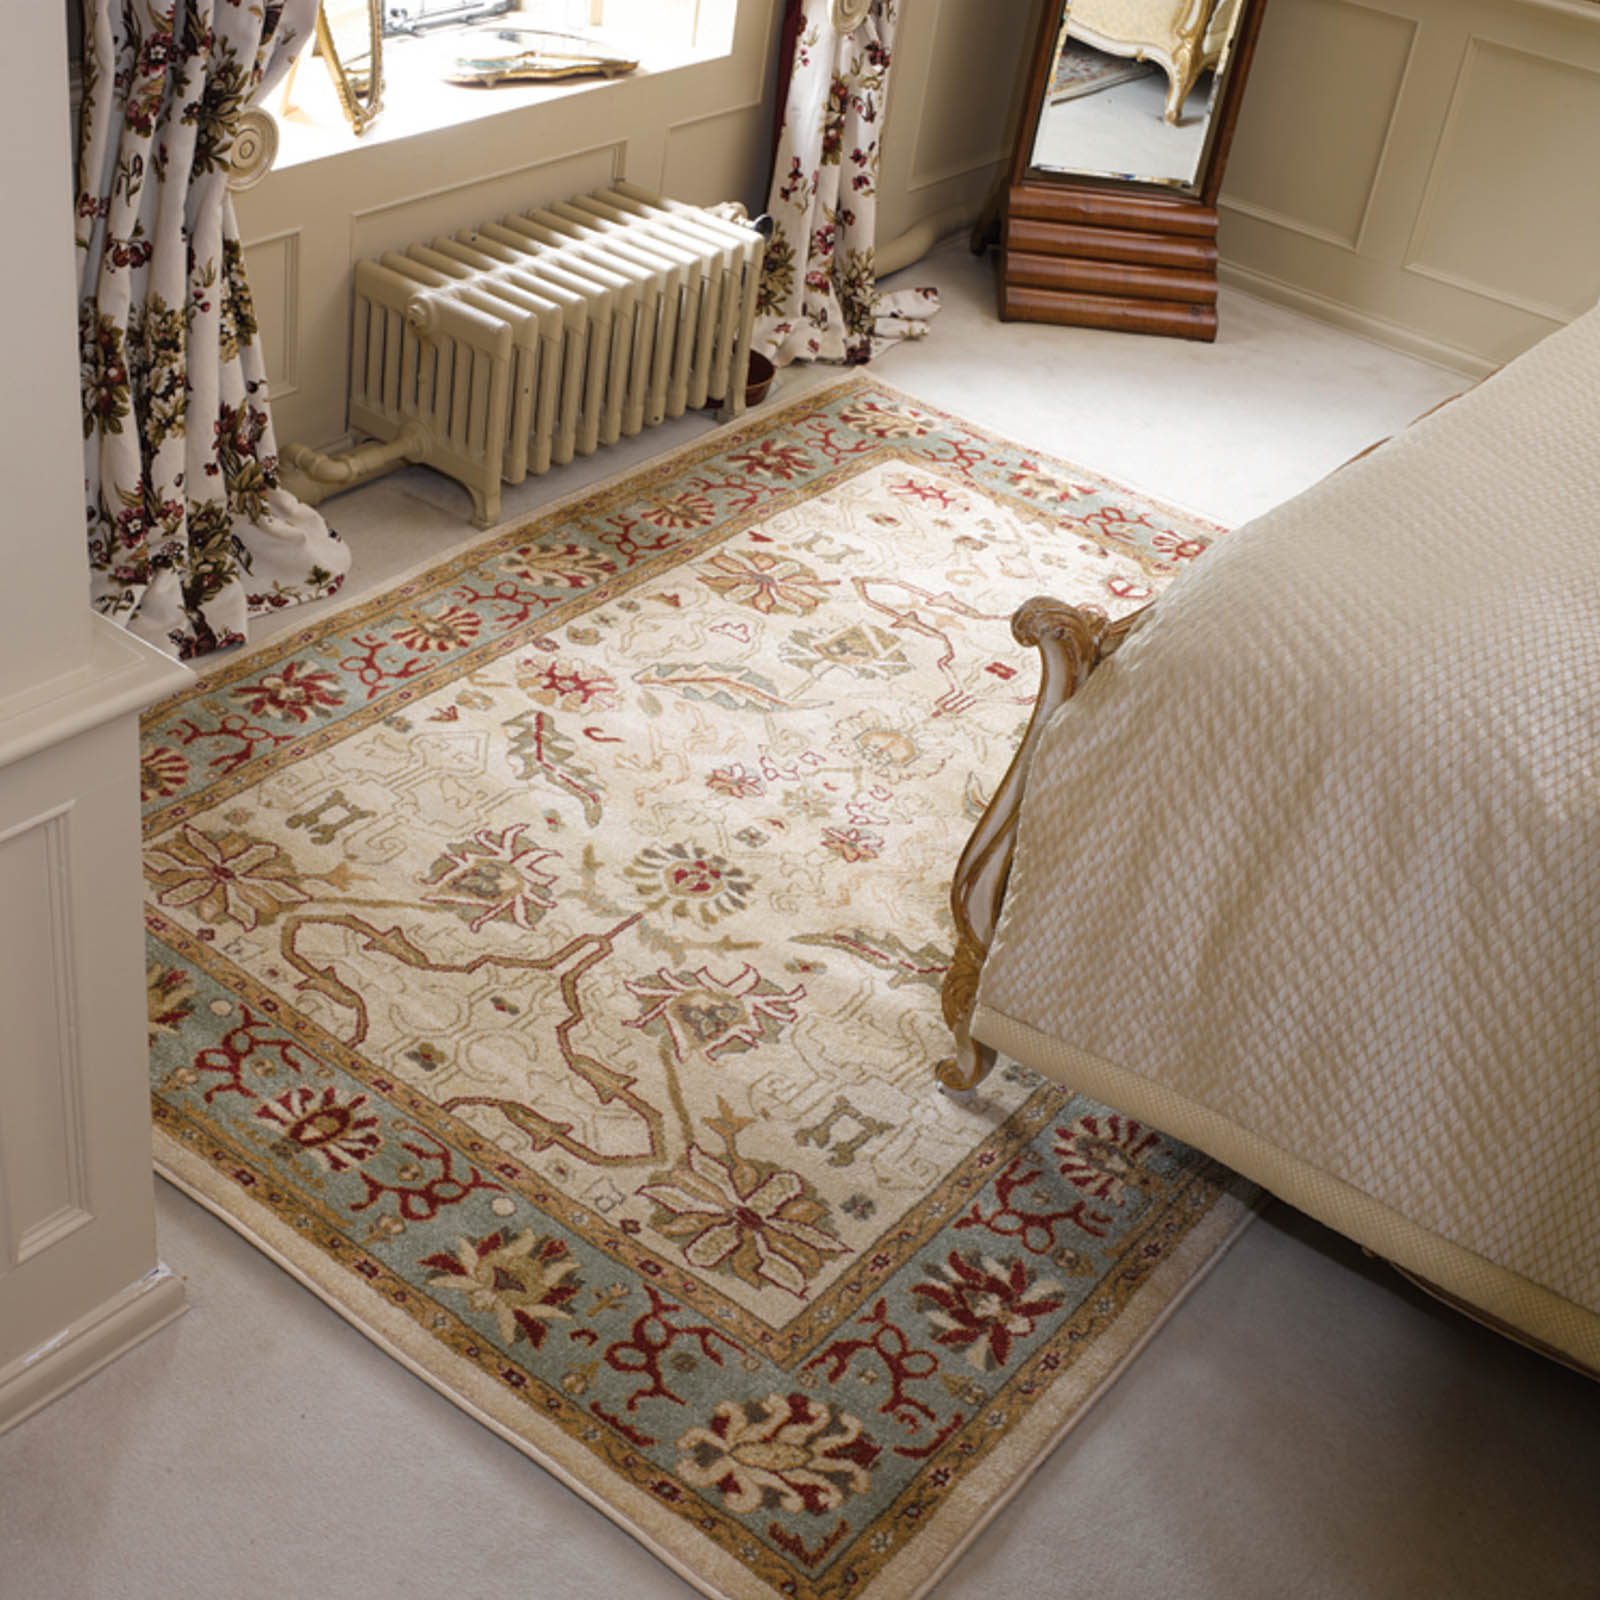 Ziegler Arak Rugs in Cream Green